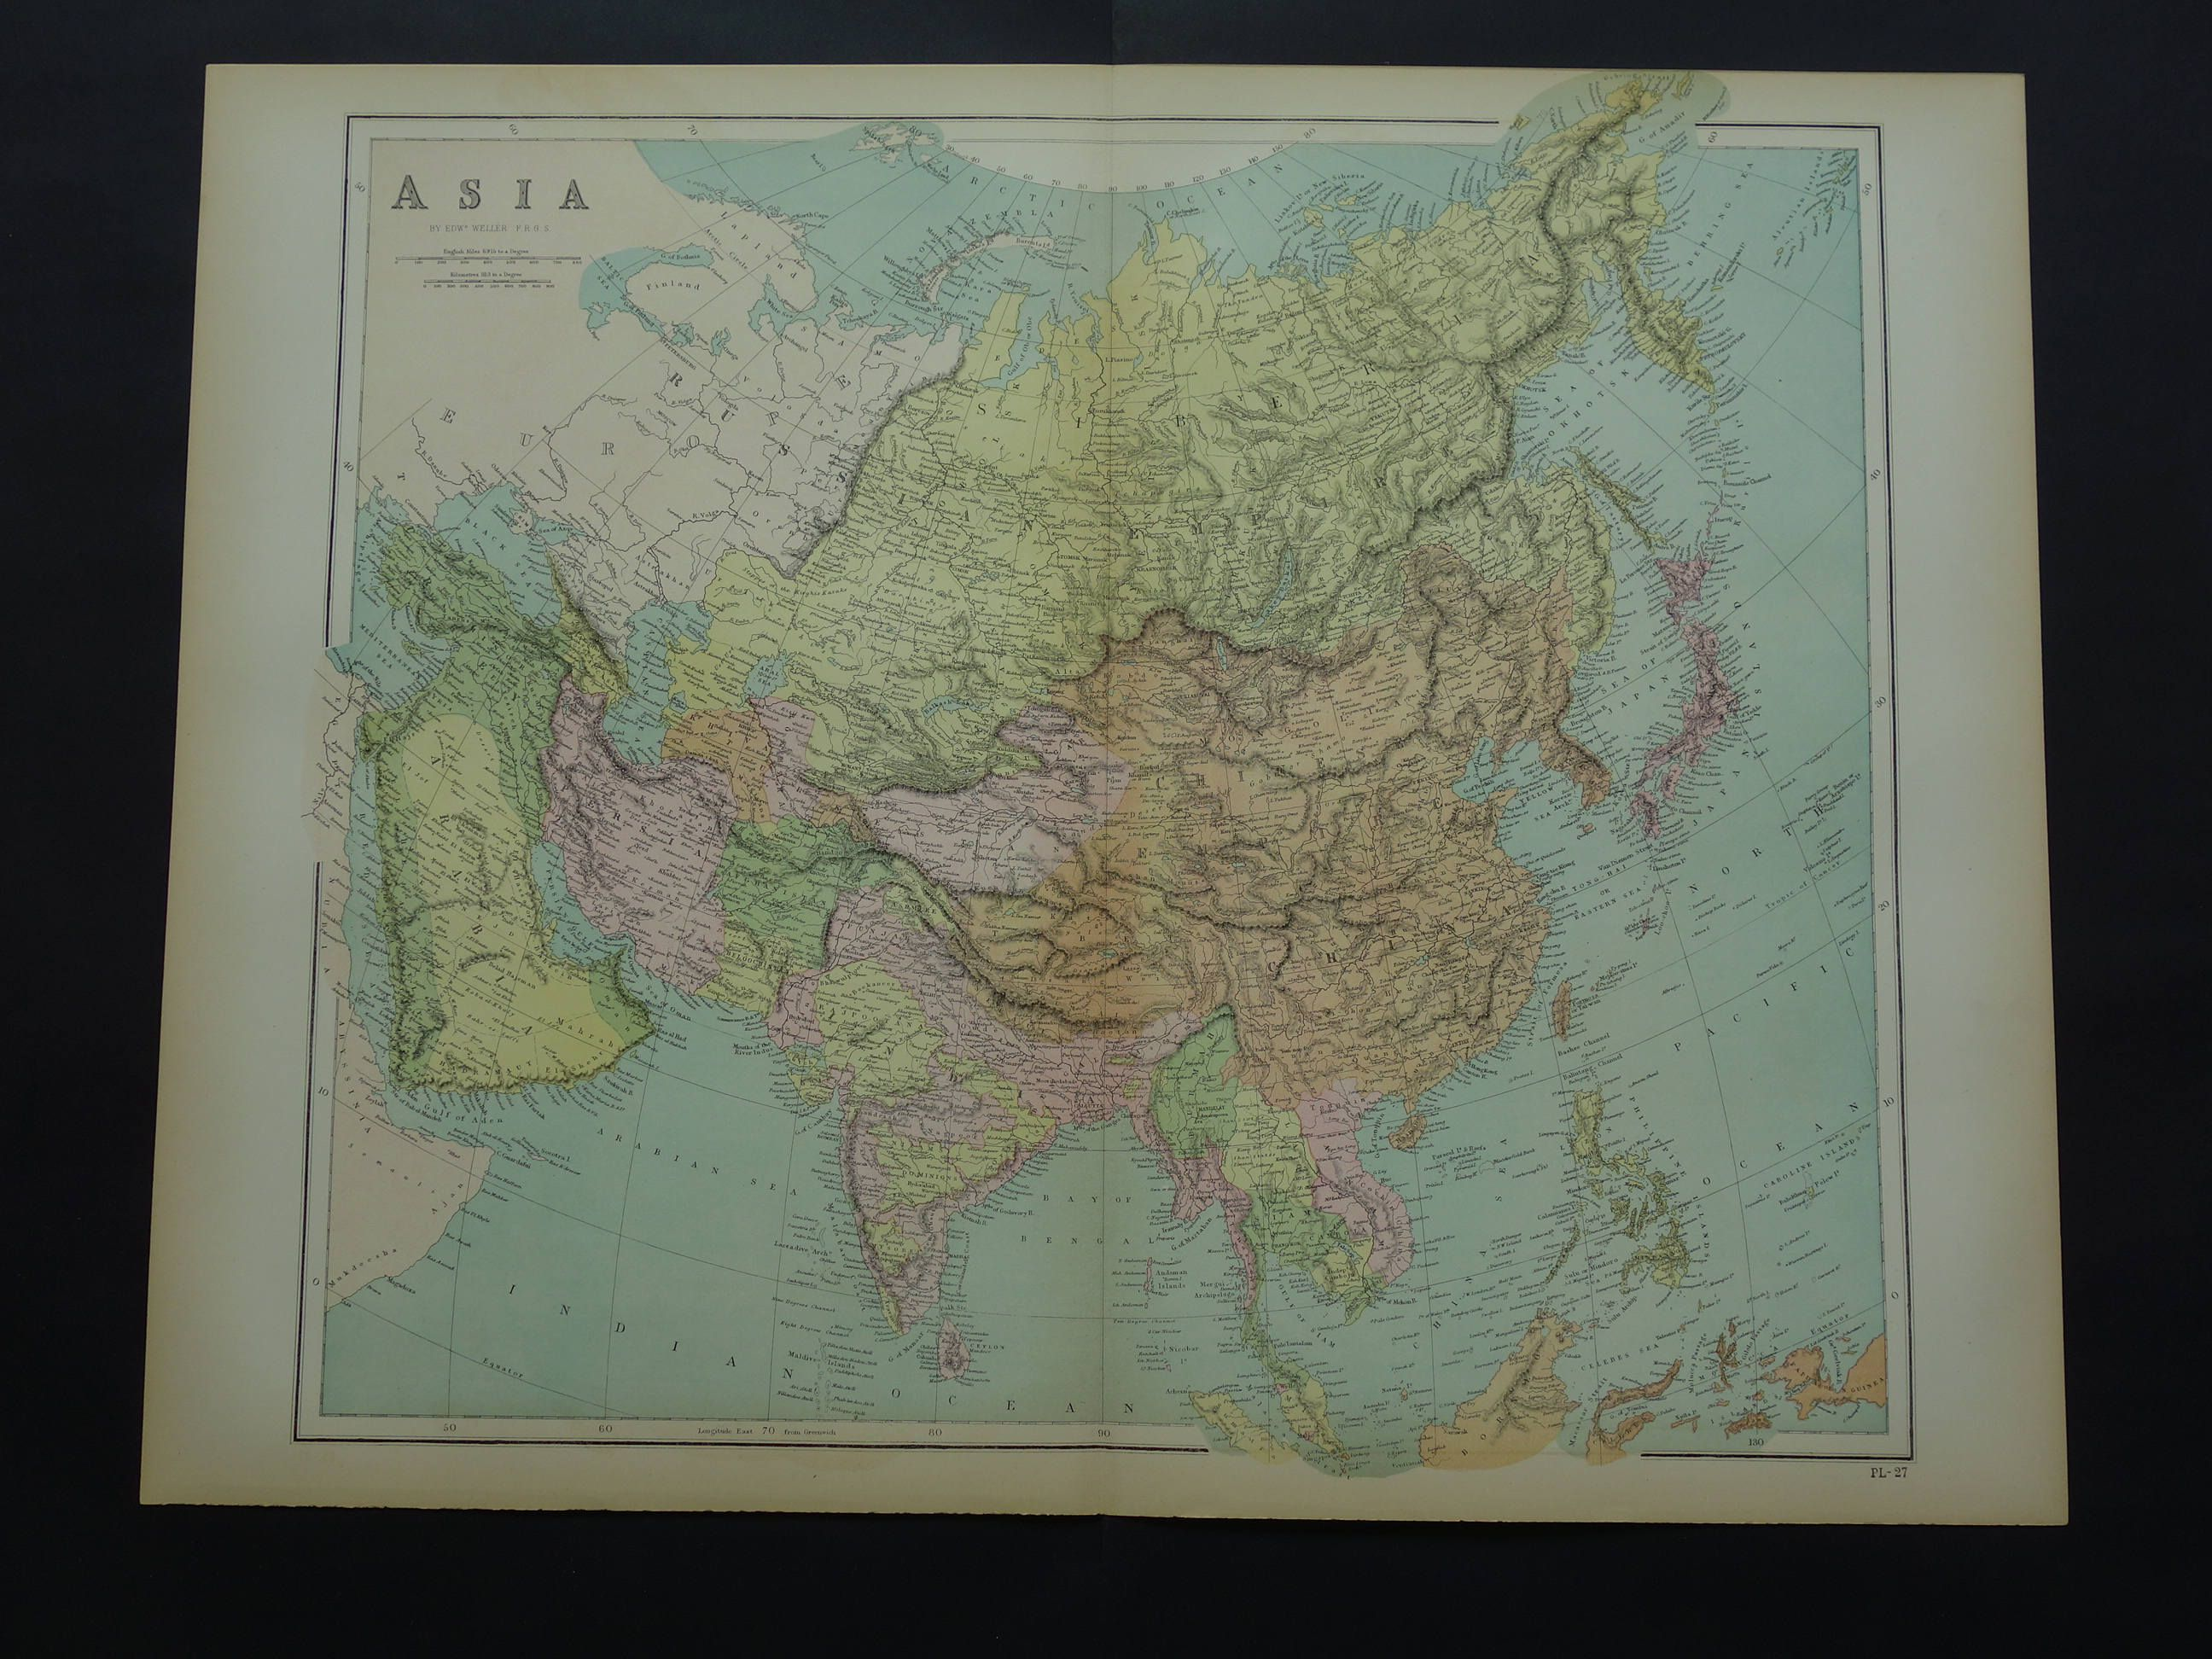 Map Of Europe Russia Middle East%0A ASIA old map of Asia in      LARGE original antique English poster about  continent India Japan Russia China vintage maps big by VintageOldMaps on  Etsy